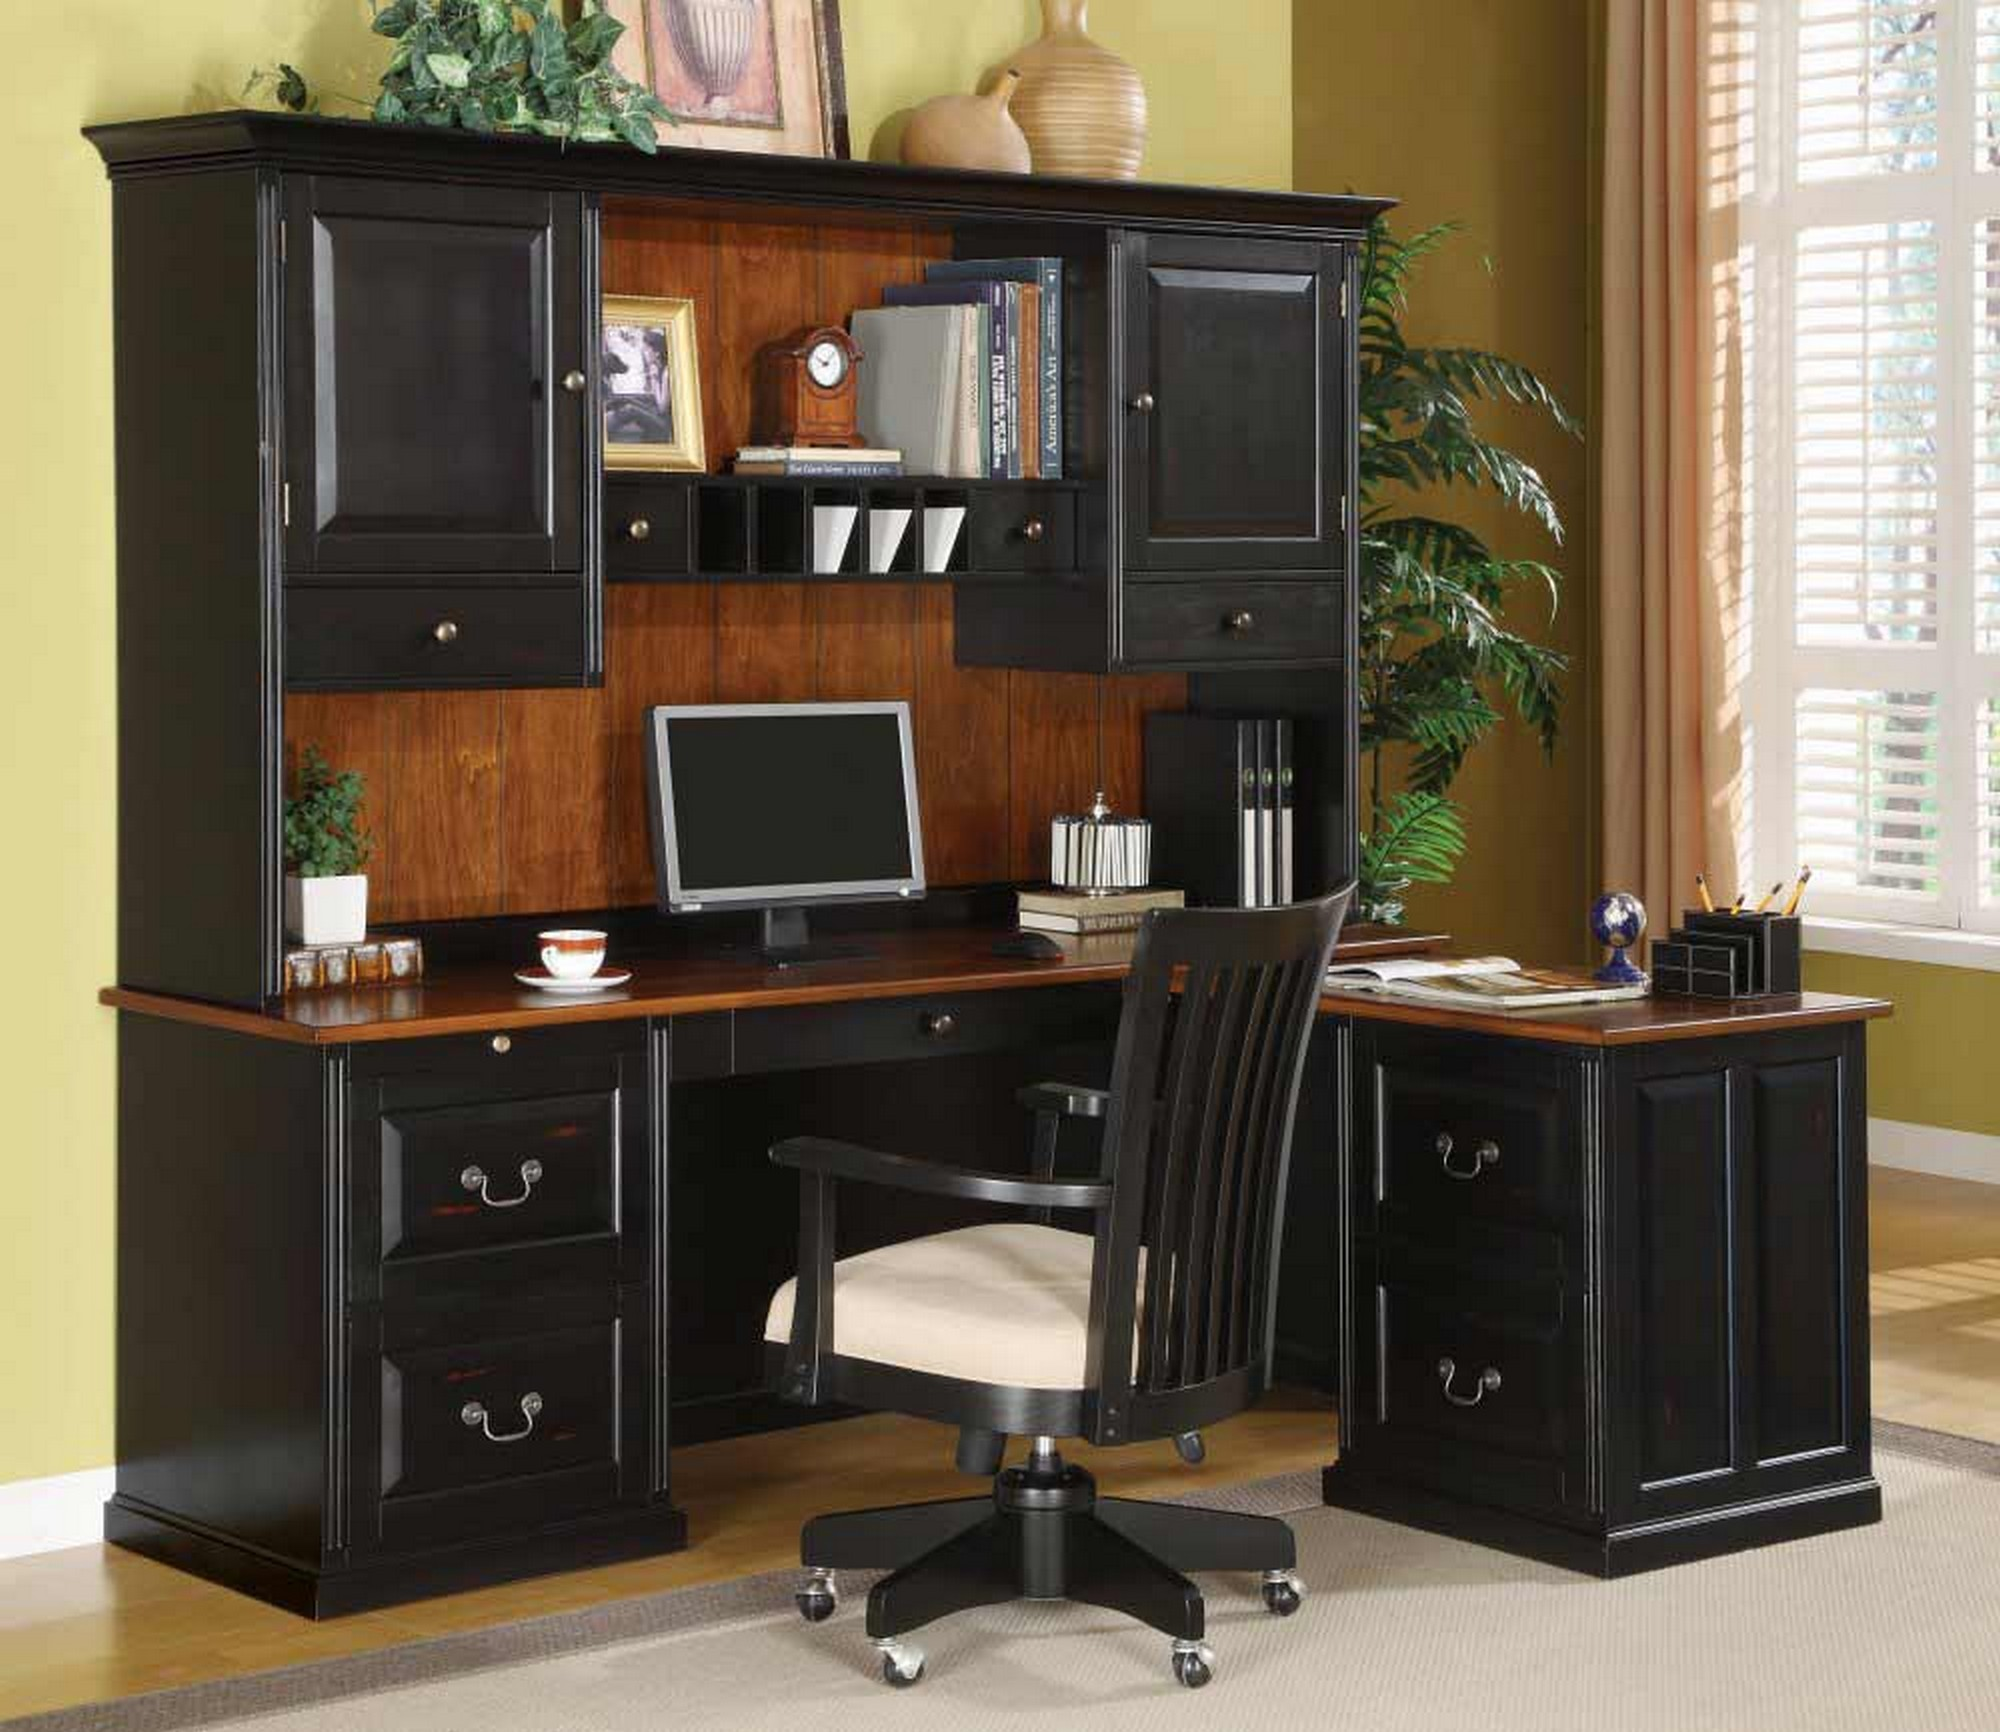 Furniture Stunning L Shaped Desk With Hutch For Office Or Home